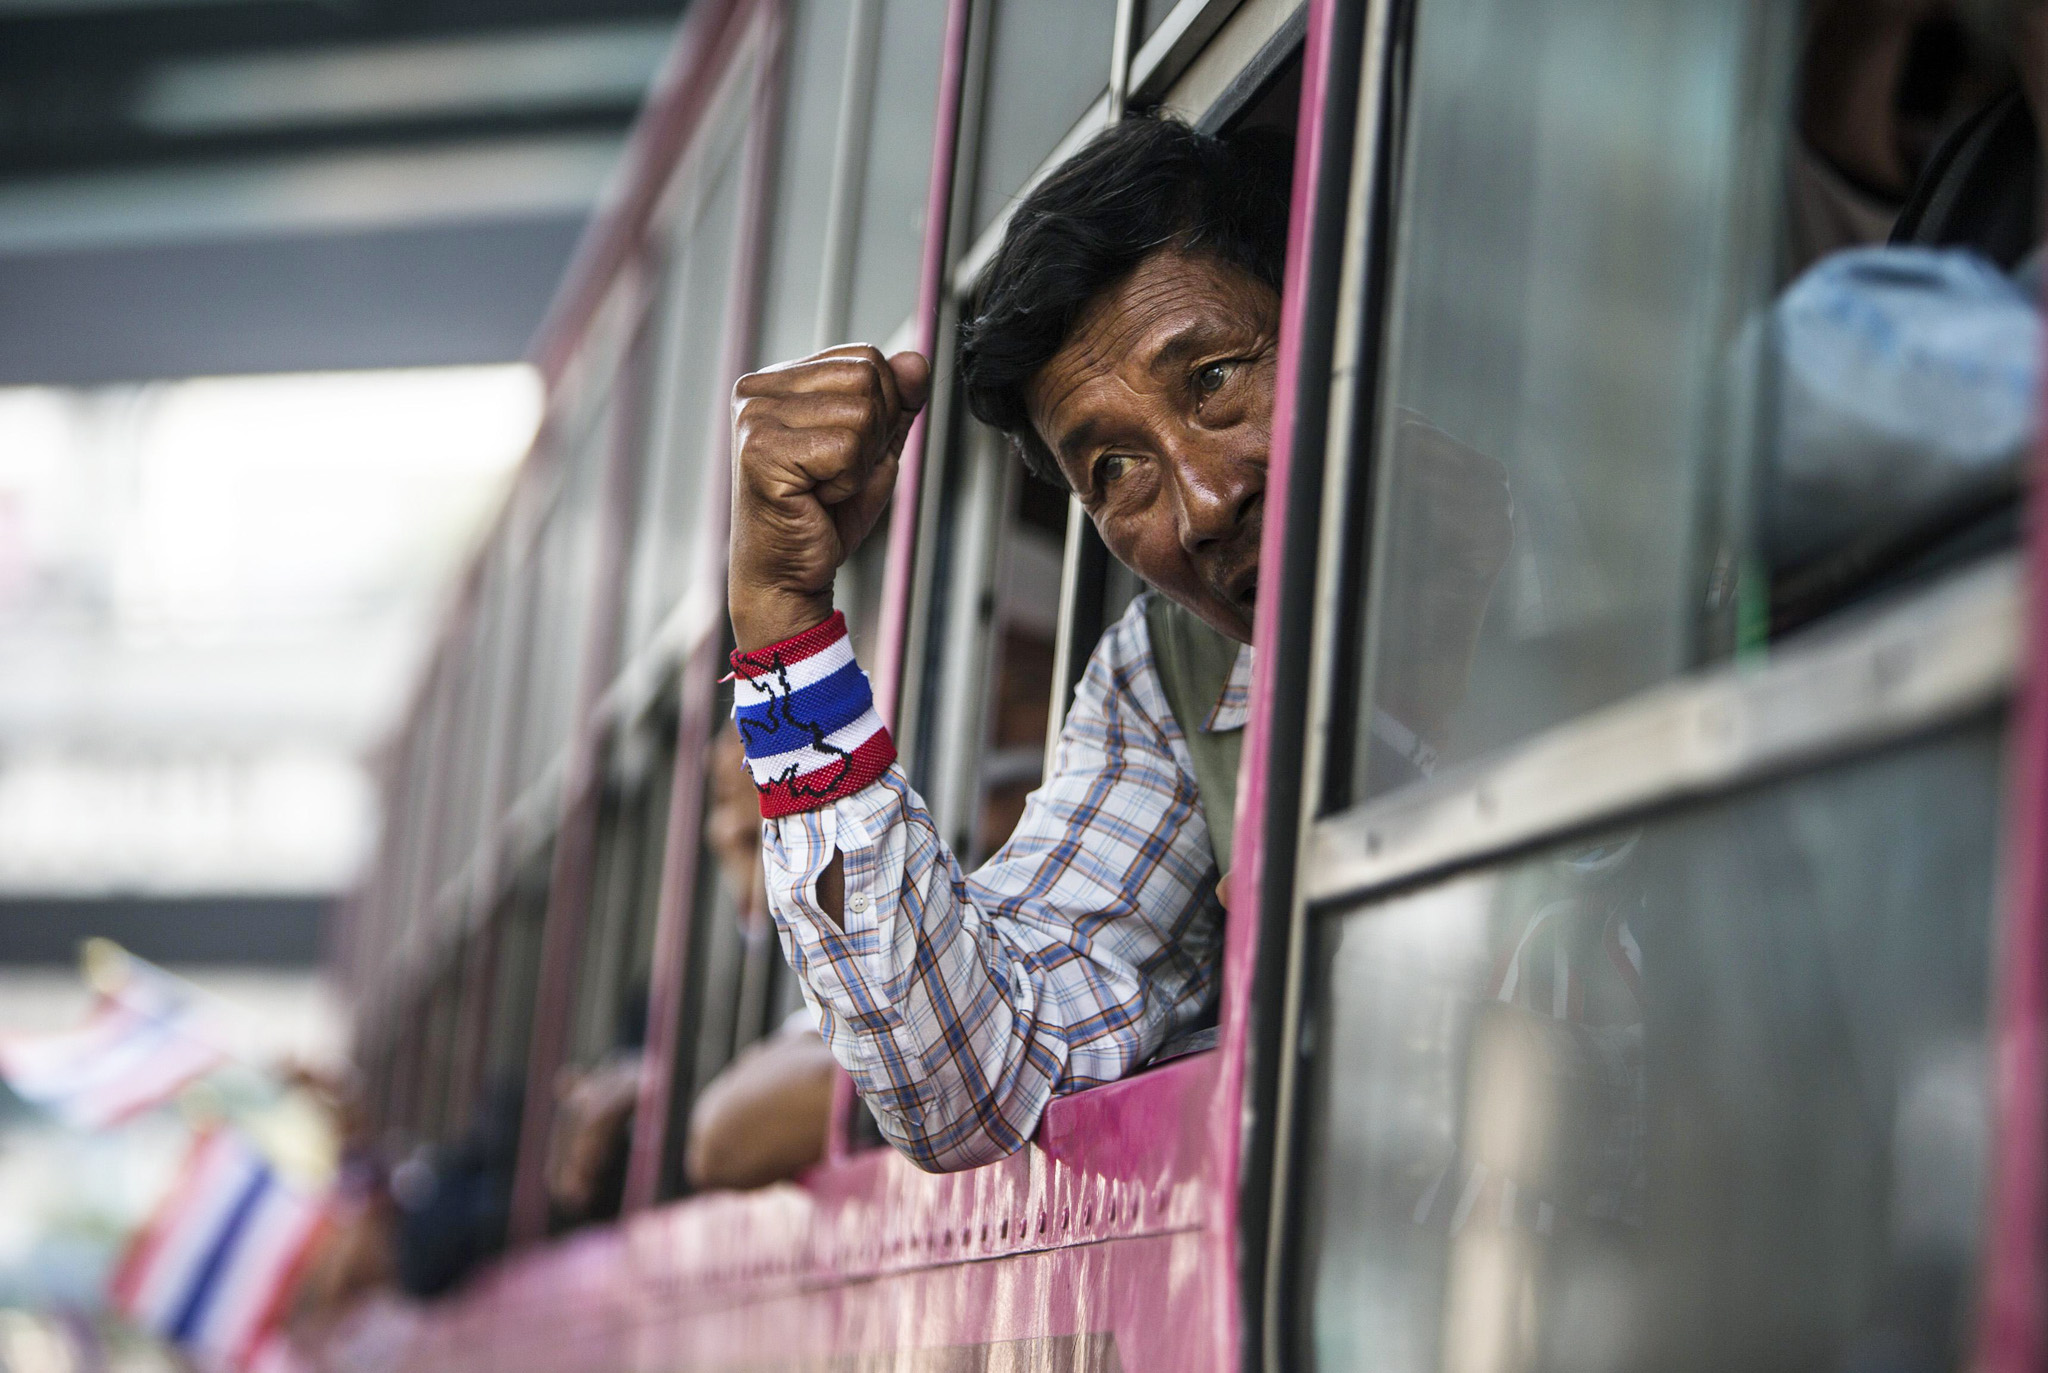 An anti-government protester gestures out of a bus window as he travels to an office for the Land Transportation Department in Nonthaburi province, on the outskirts of Bangkok...An anti-government protester gestures out of a bus window as he travels to an office for the Land Transportation Department in Nonthaburi province, on the outskirts of Bangkok, January 29, 2014. Hundreds of anti-government protesters travelled to the provincial office on Wednesday and demanded employees leave the building and suspend operations.  REUTERS/Nir Elias (THAILAND - Tags: CIVIL UNREST POLITICS TRANSPORT)